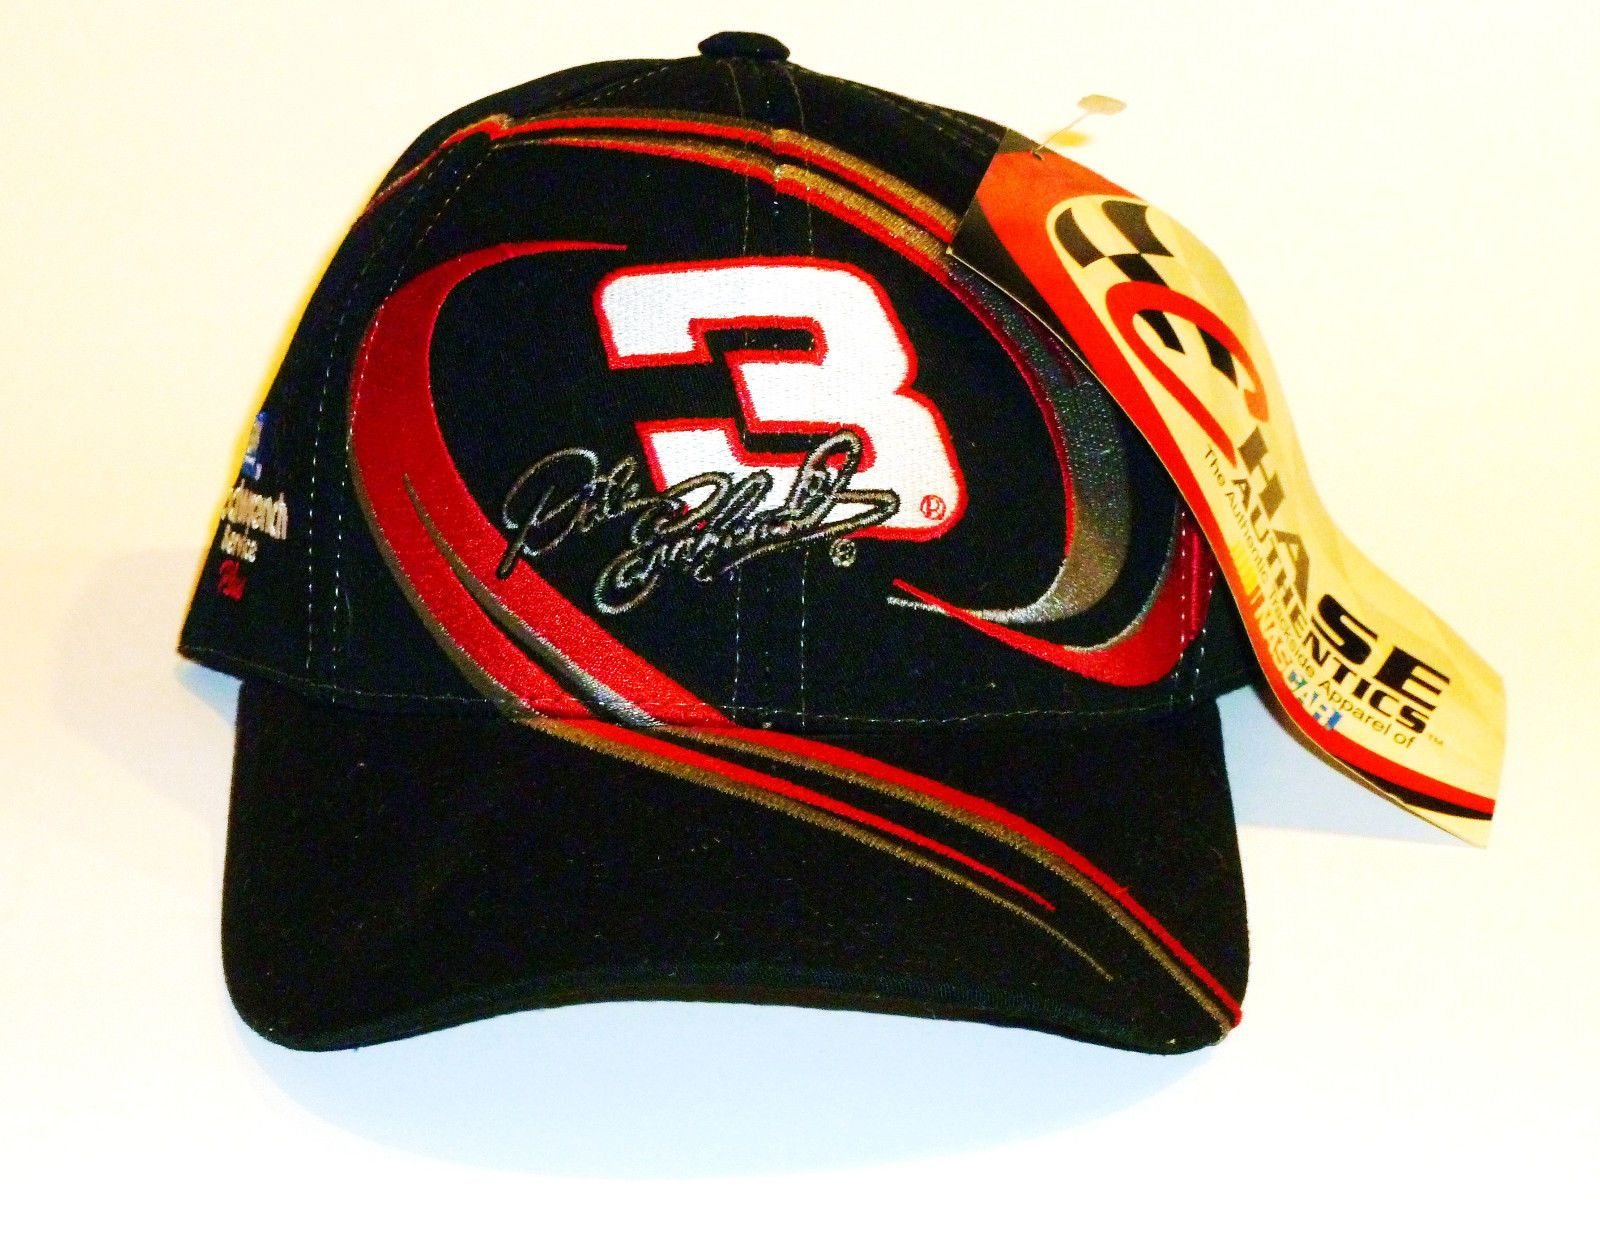 a91fb78c389 Dale Earnhardt Vortex Cap by Chase Authentics. A week after his passing